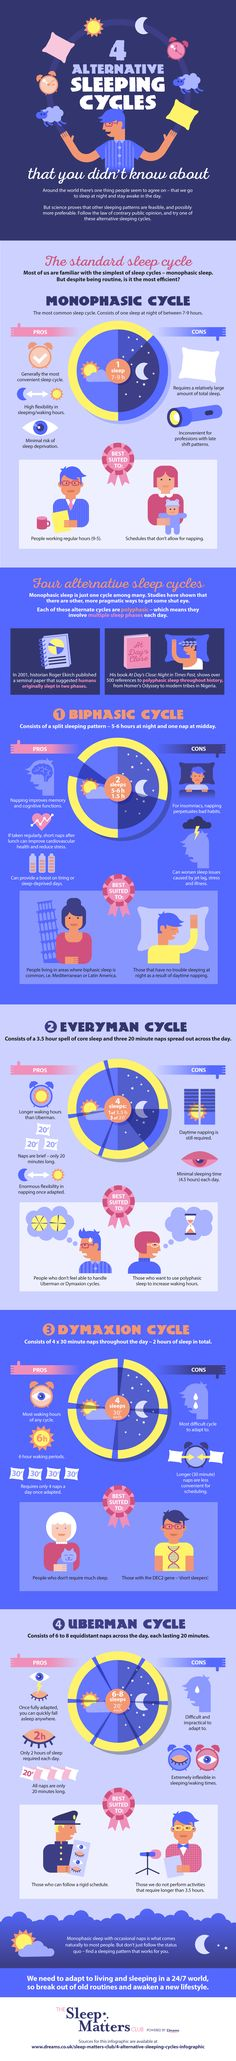 Four Alternative Sleeping Cycles #infographic  If you're into experimenting with fundamental aspects of your existence, try hacking your life into different sized chunks of sleeping and waking.